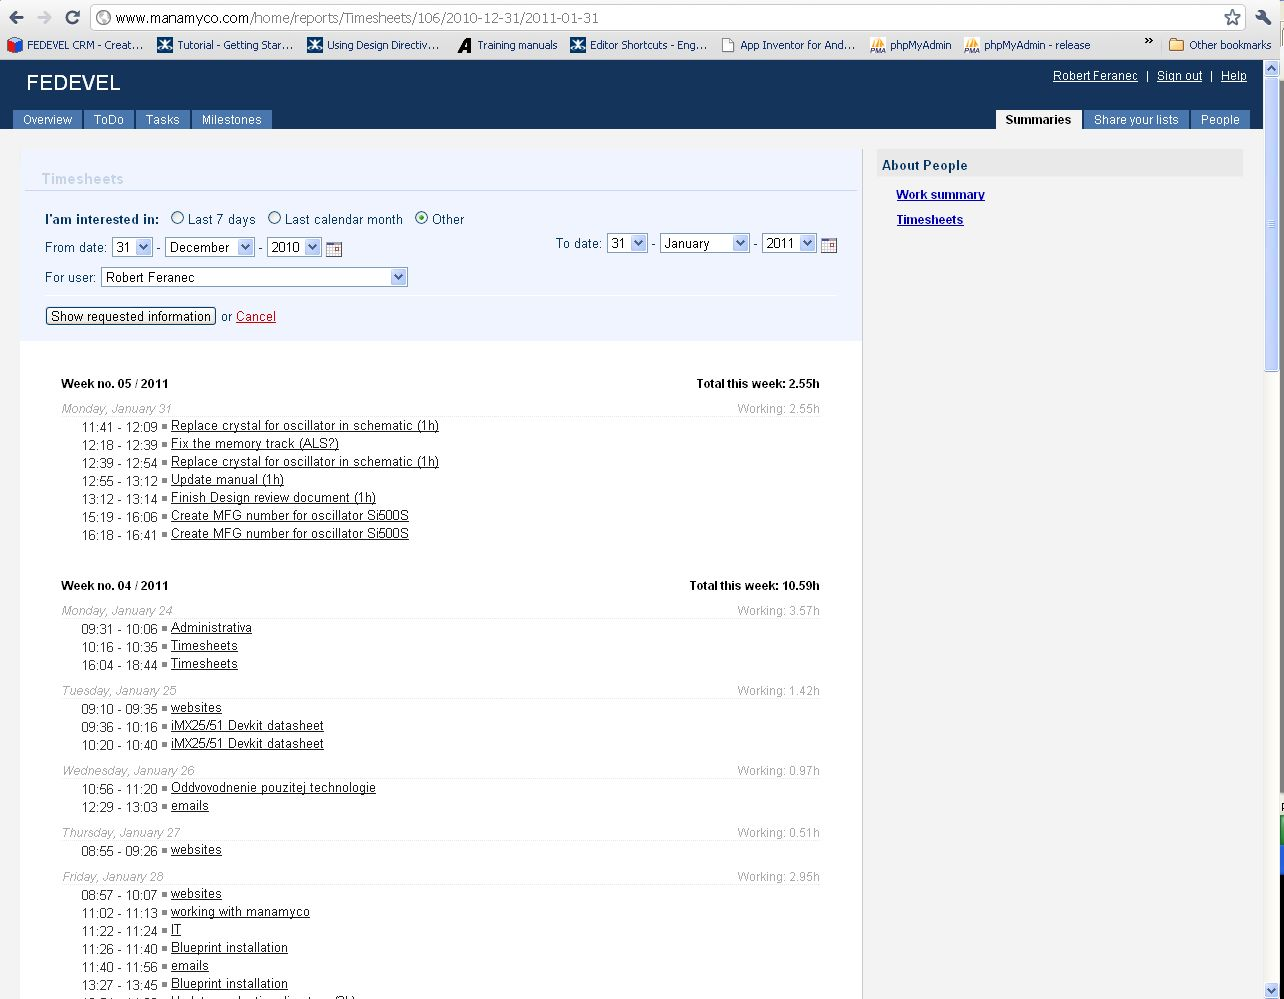 Time sheets and Work summary screenshots from ProjectAndTask – Timesheet Design